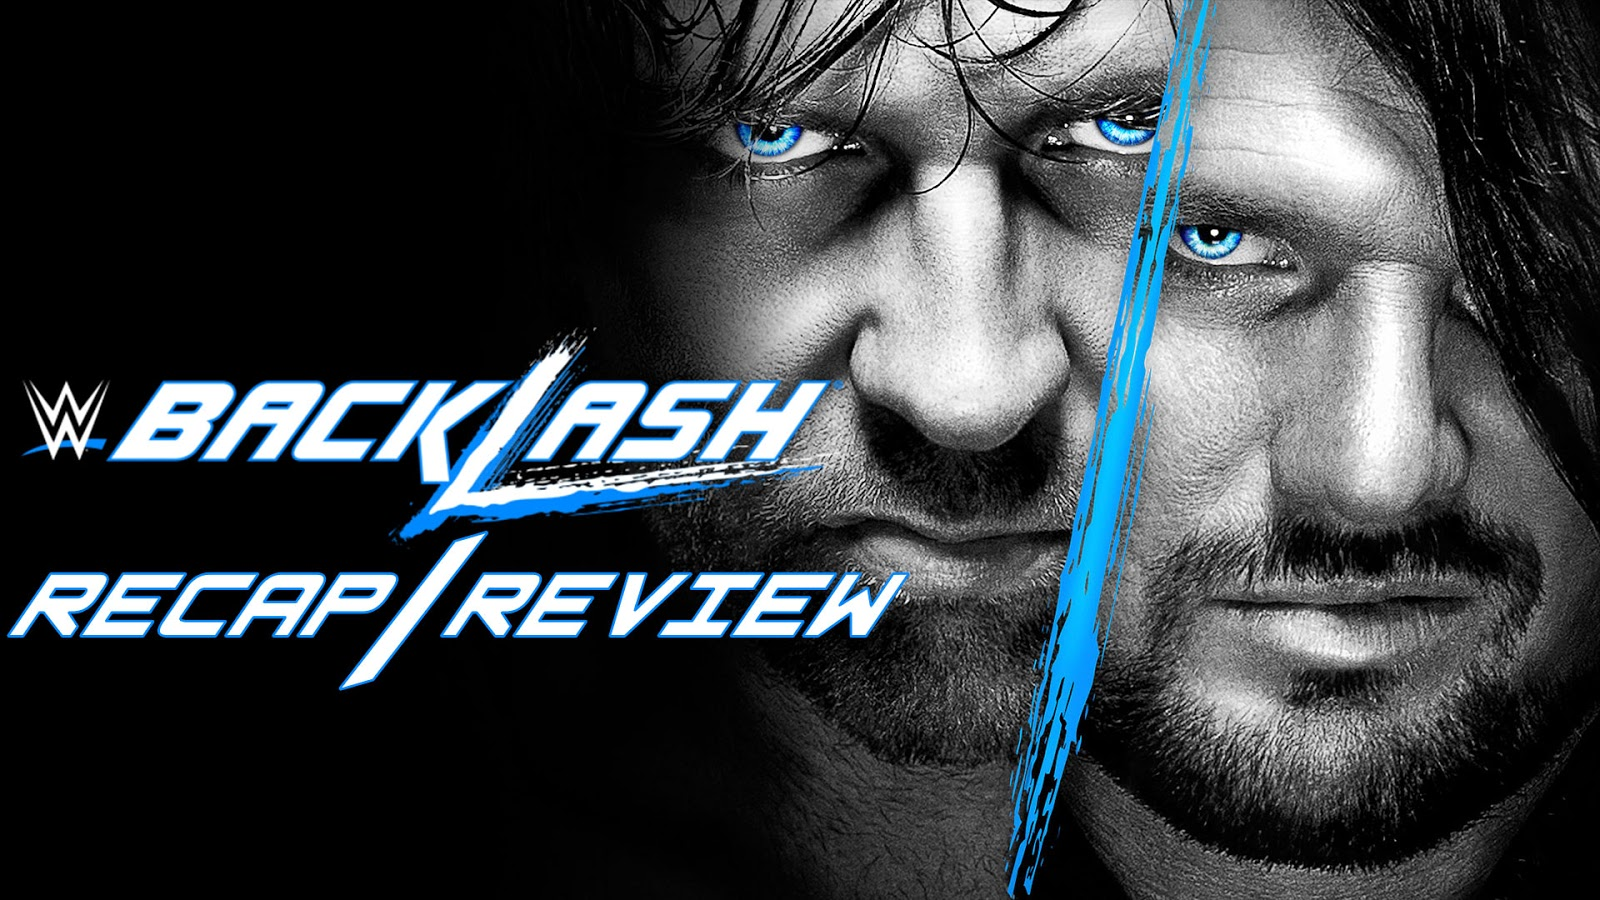 WWE Backlash 2016 Recap and Review Podcast